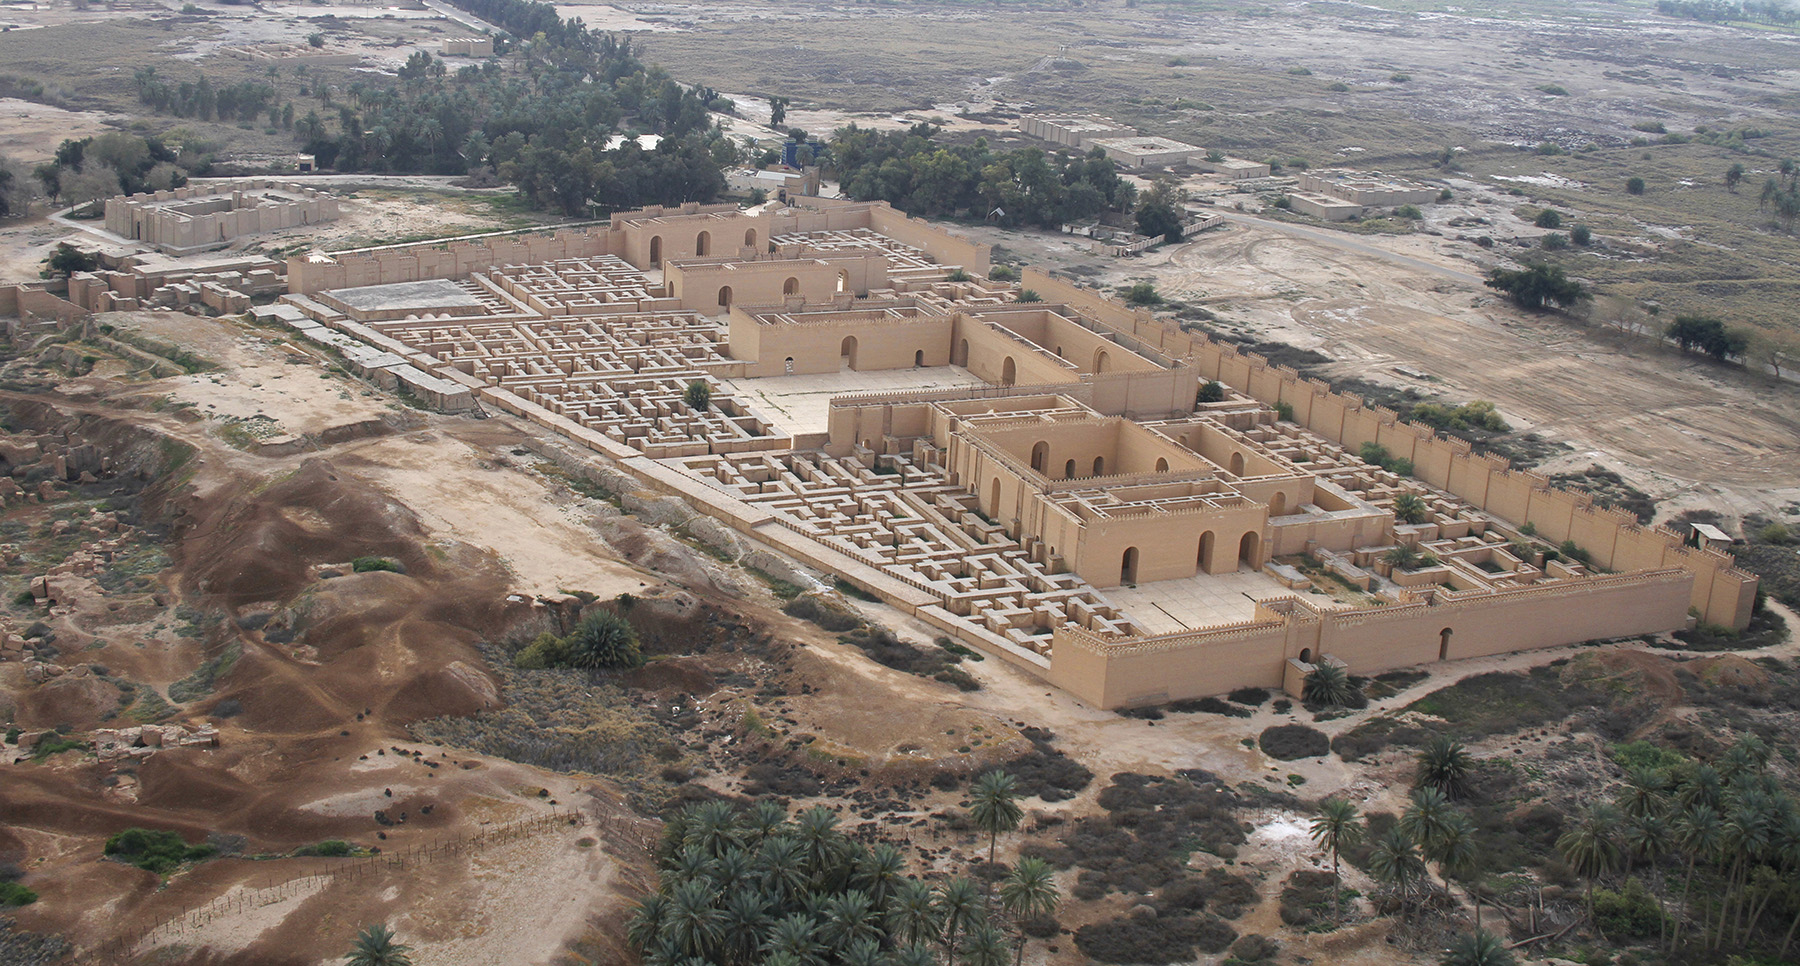 Humiliation: The Fall of Babylon, the World's Capital